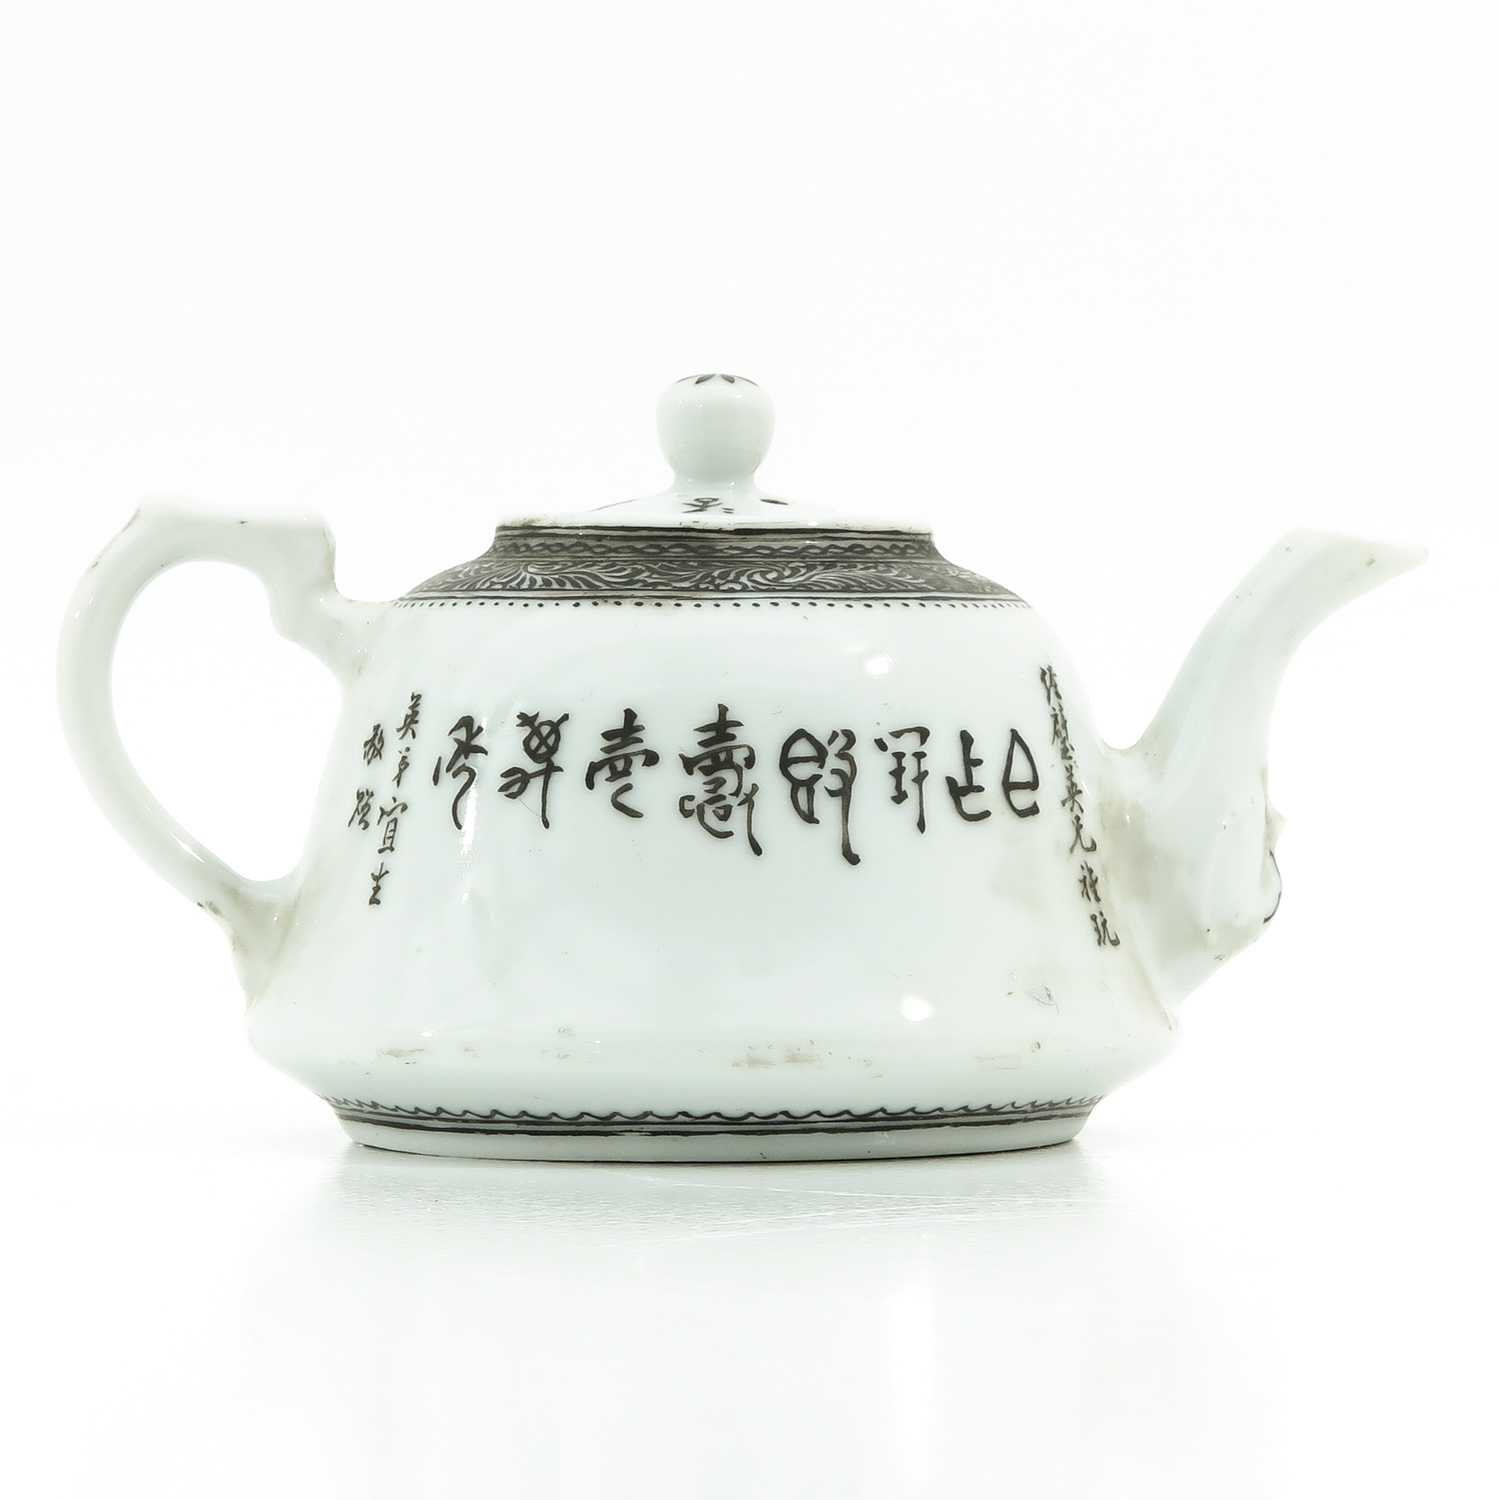 A Chinese Teapot - Image 3 of 10